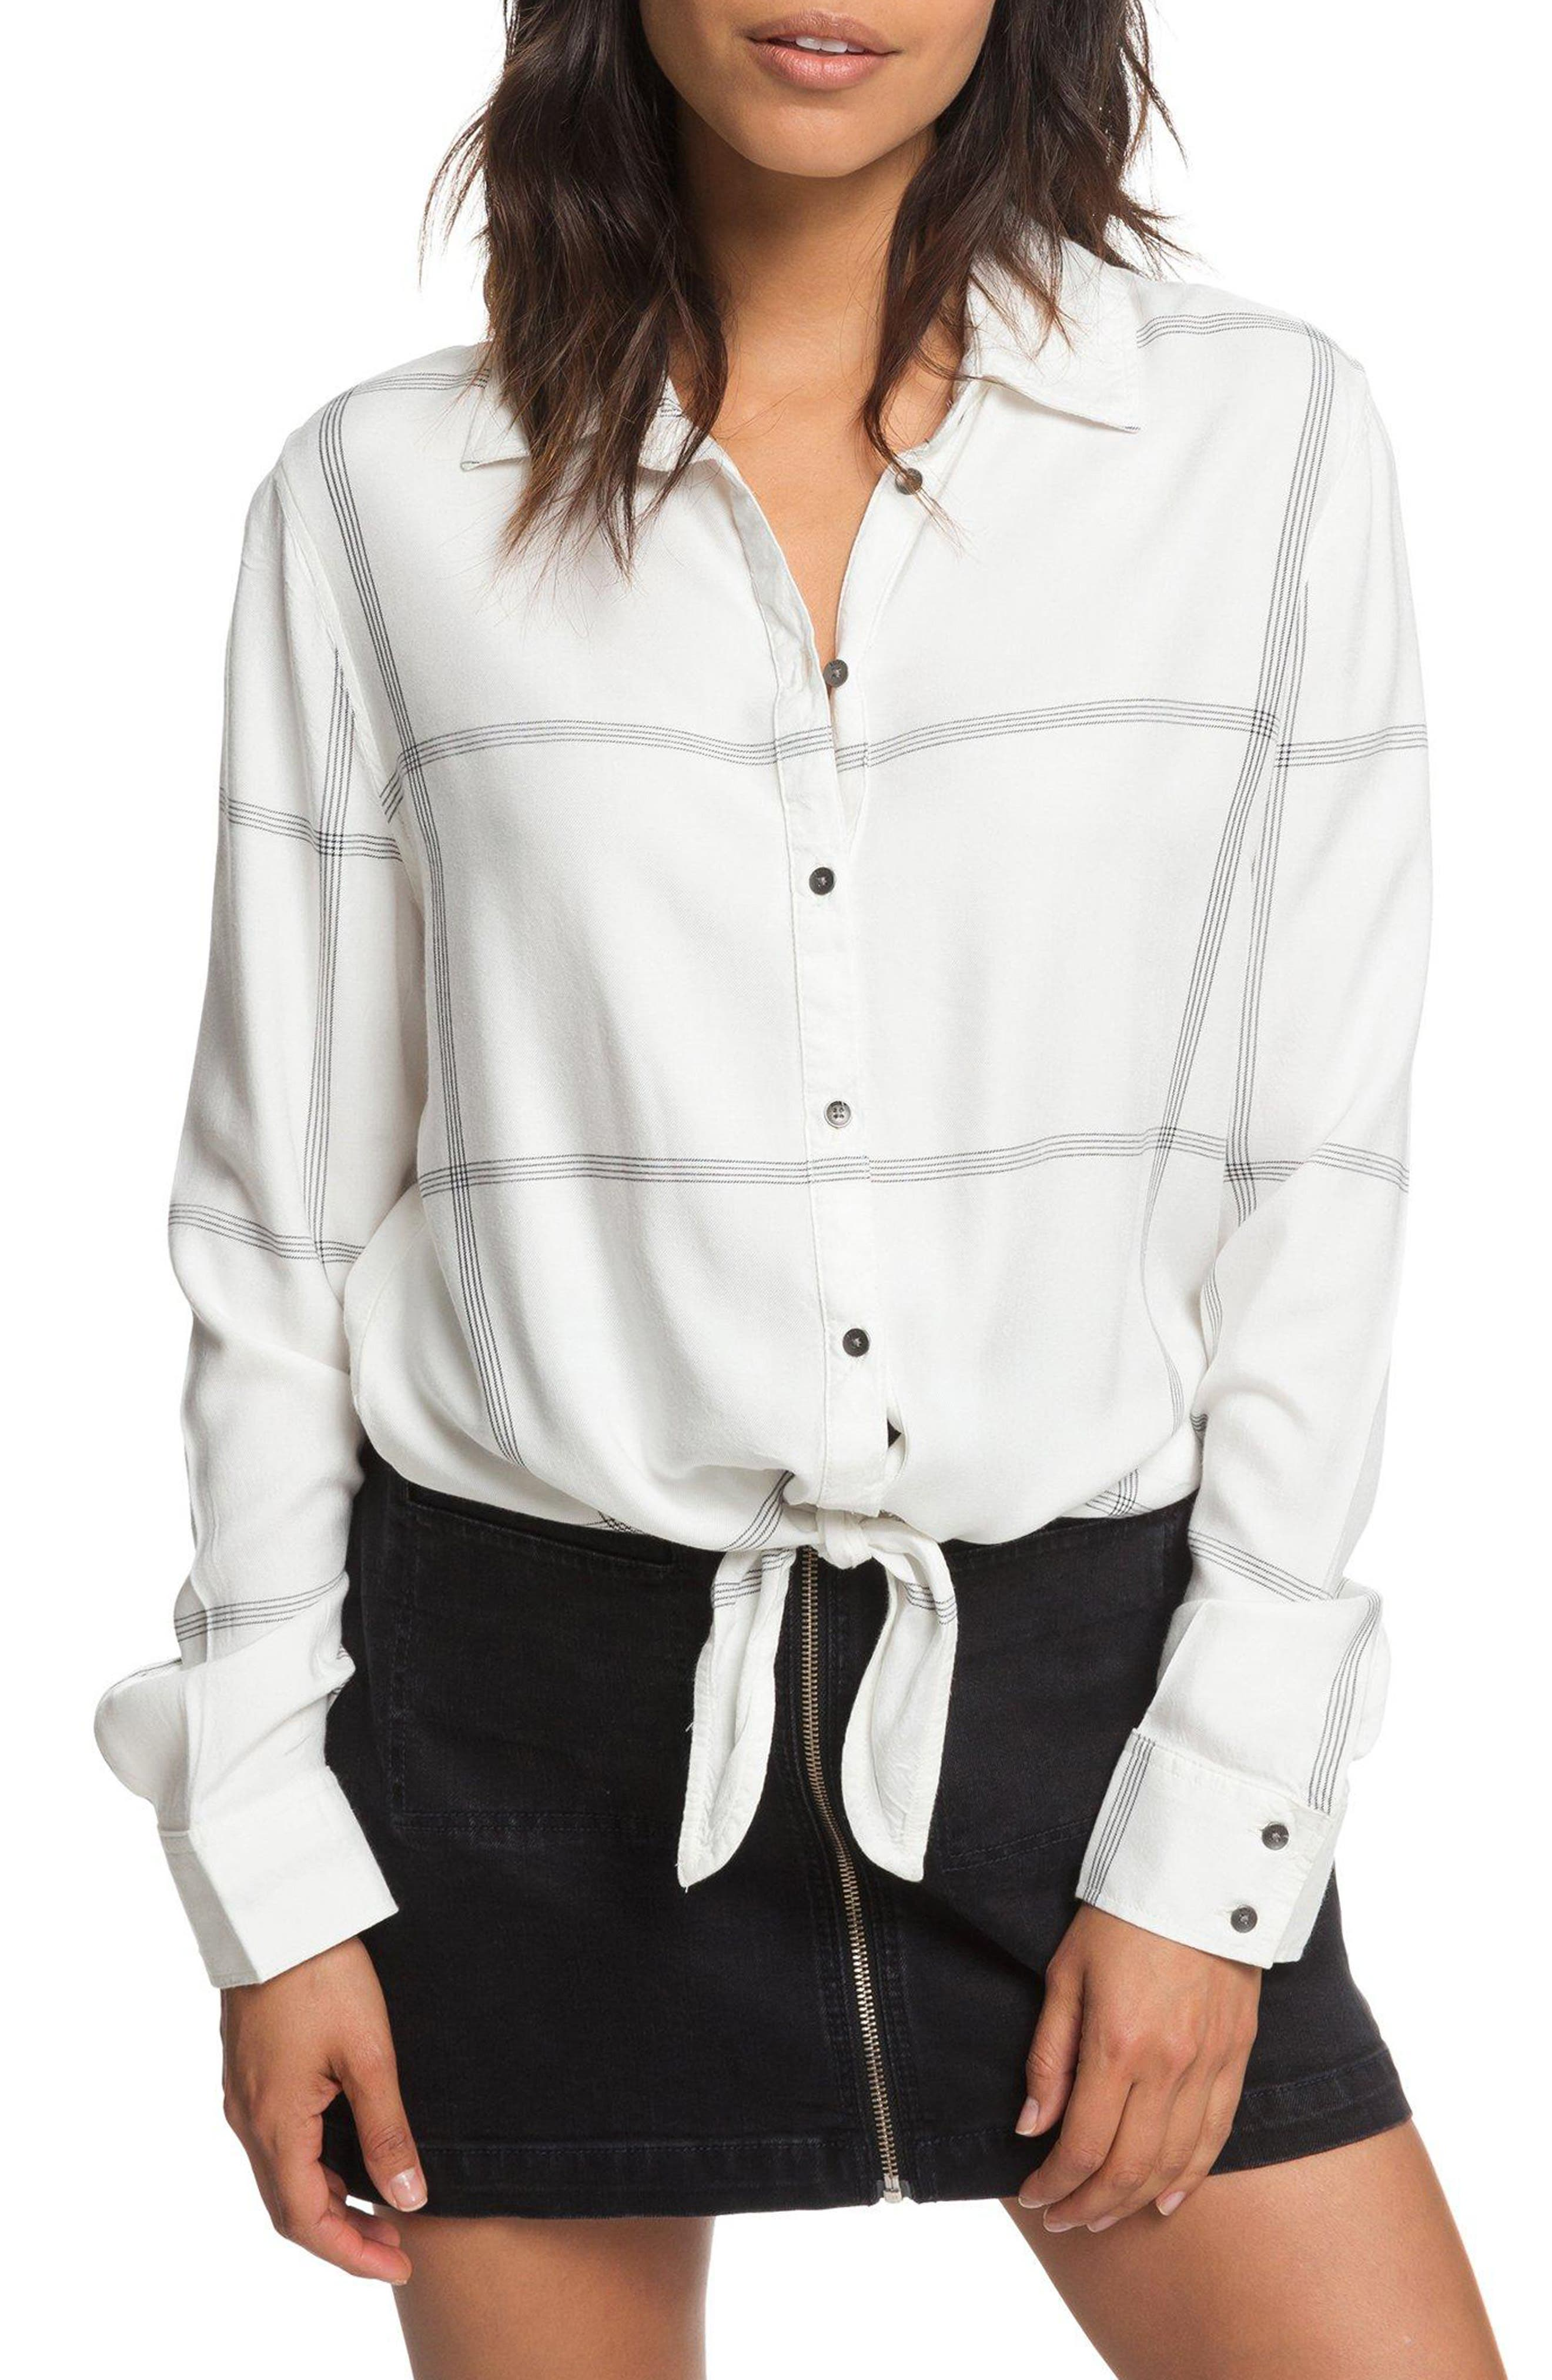 ROXY,                             Suburb Vibes Tie Waist Top,                             Main thumbnail 1, color,                             100